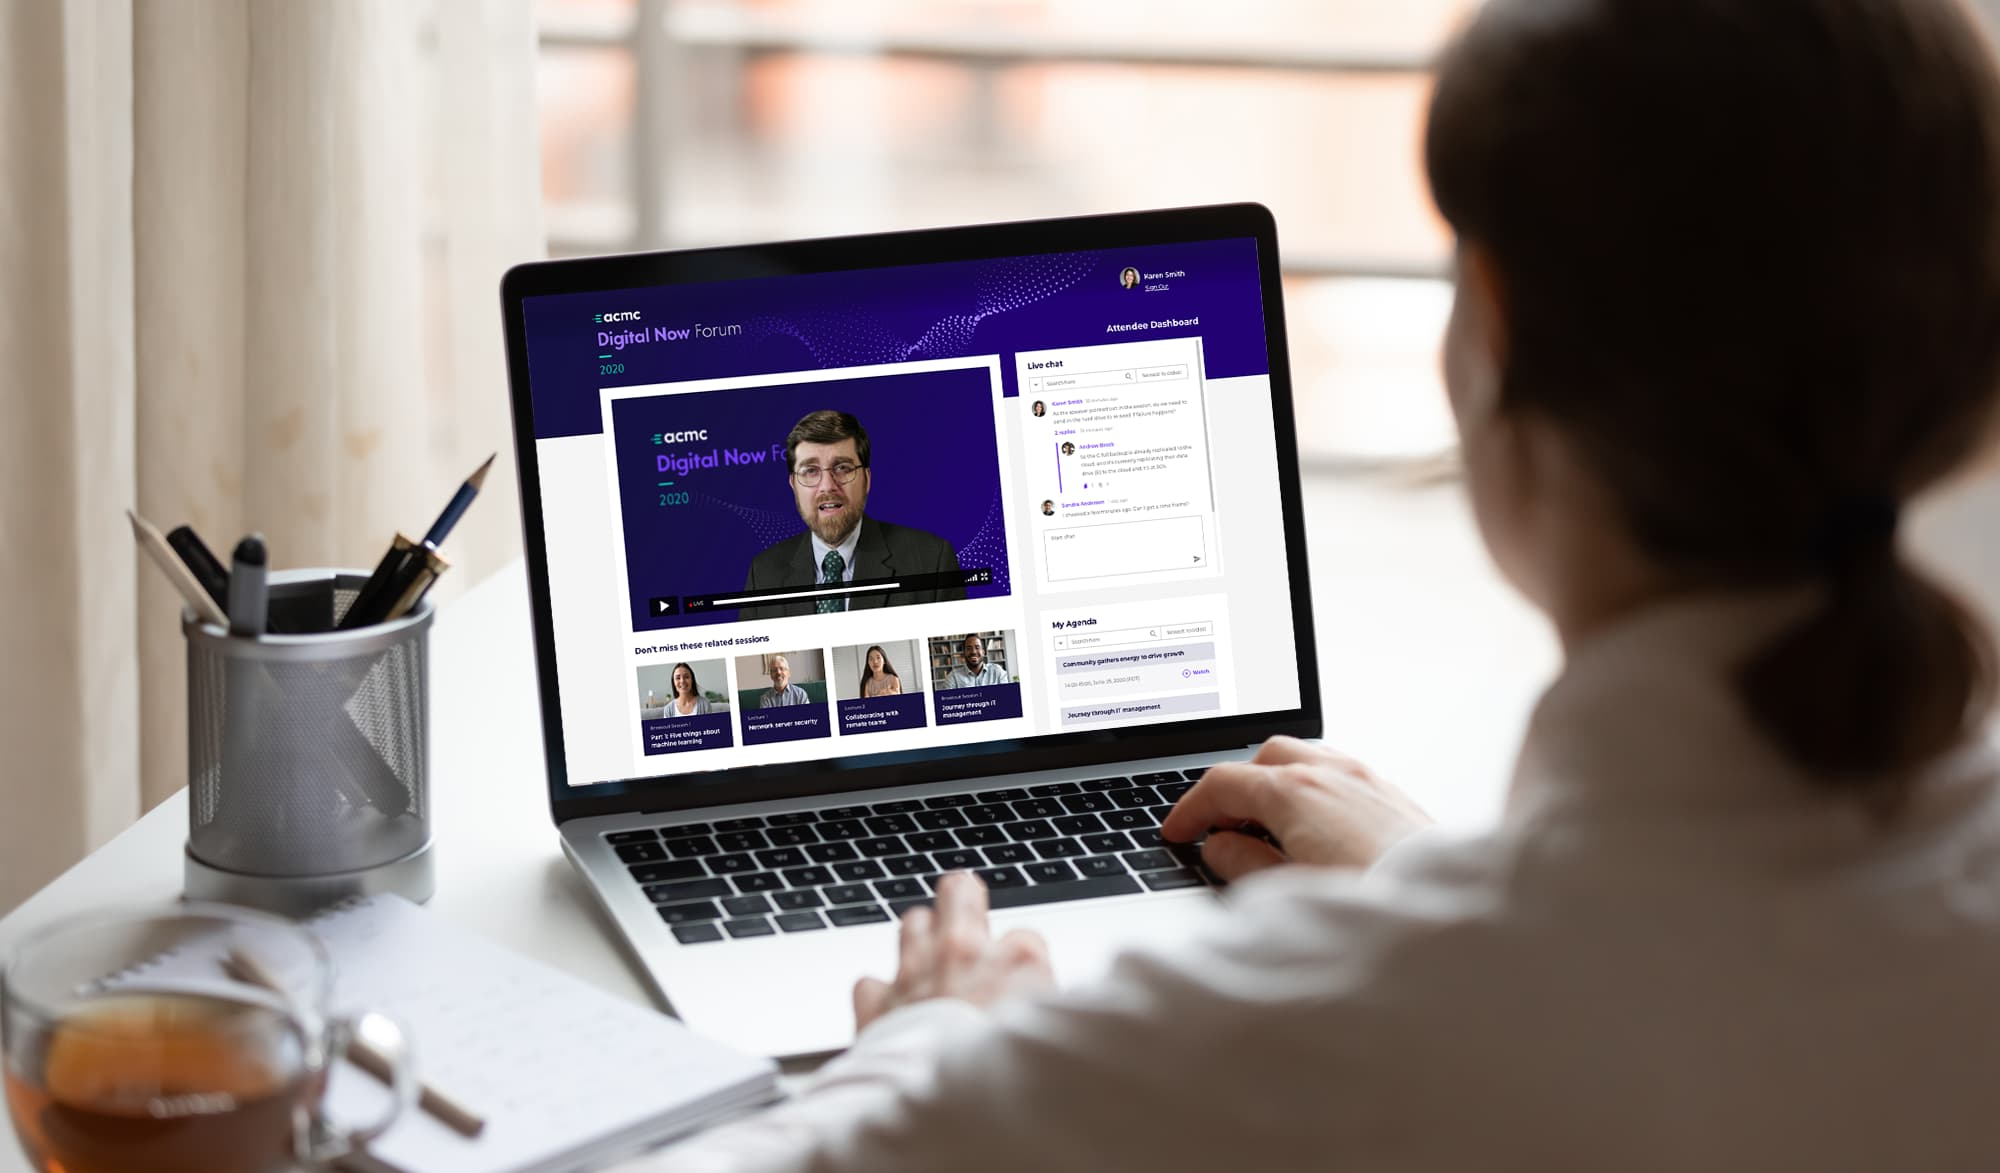 A business person working from home attends a virtual conference.